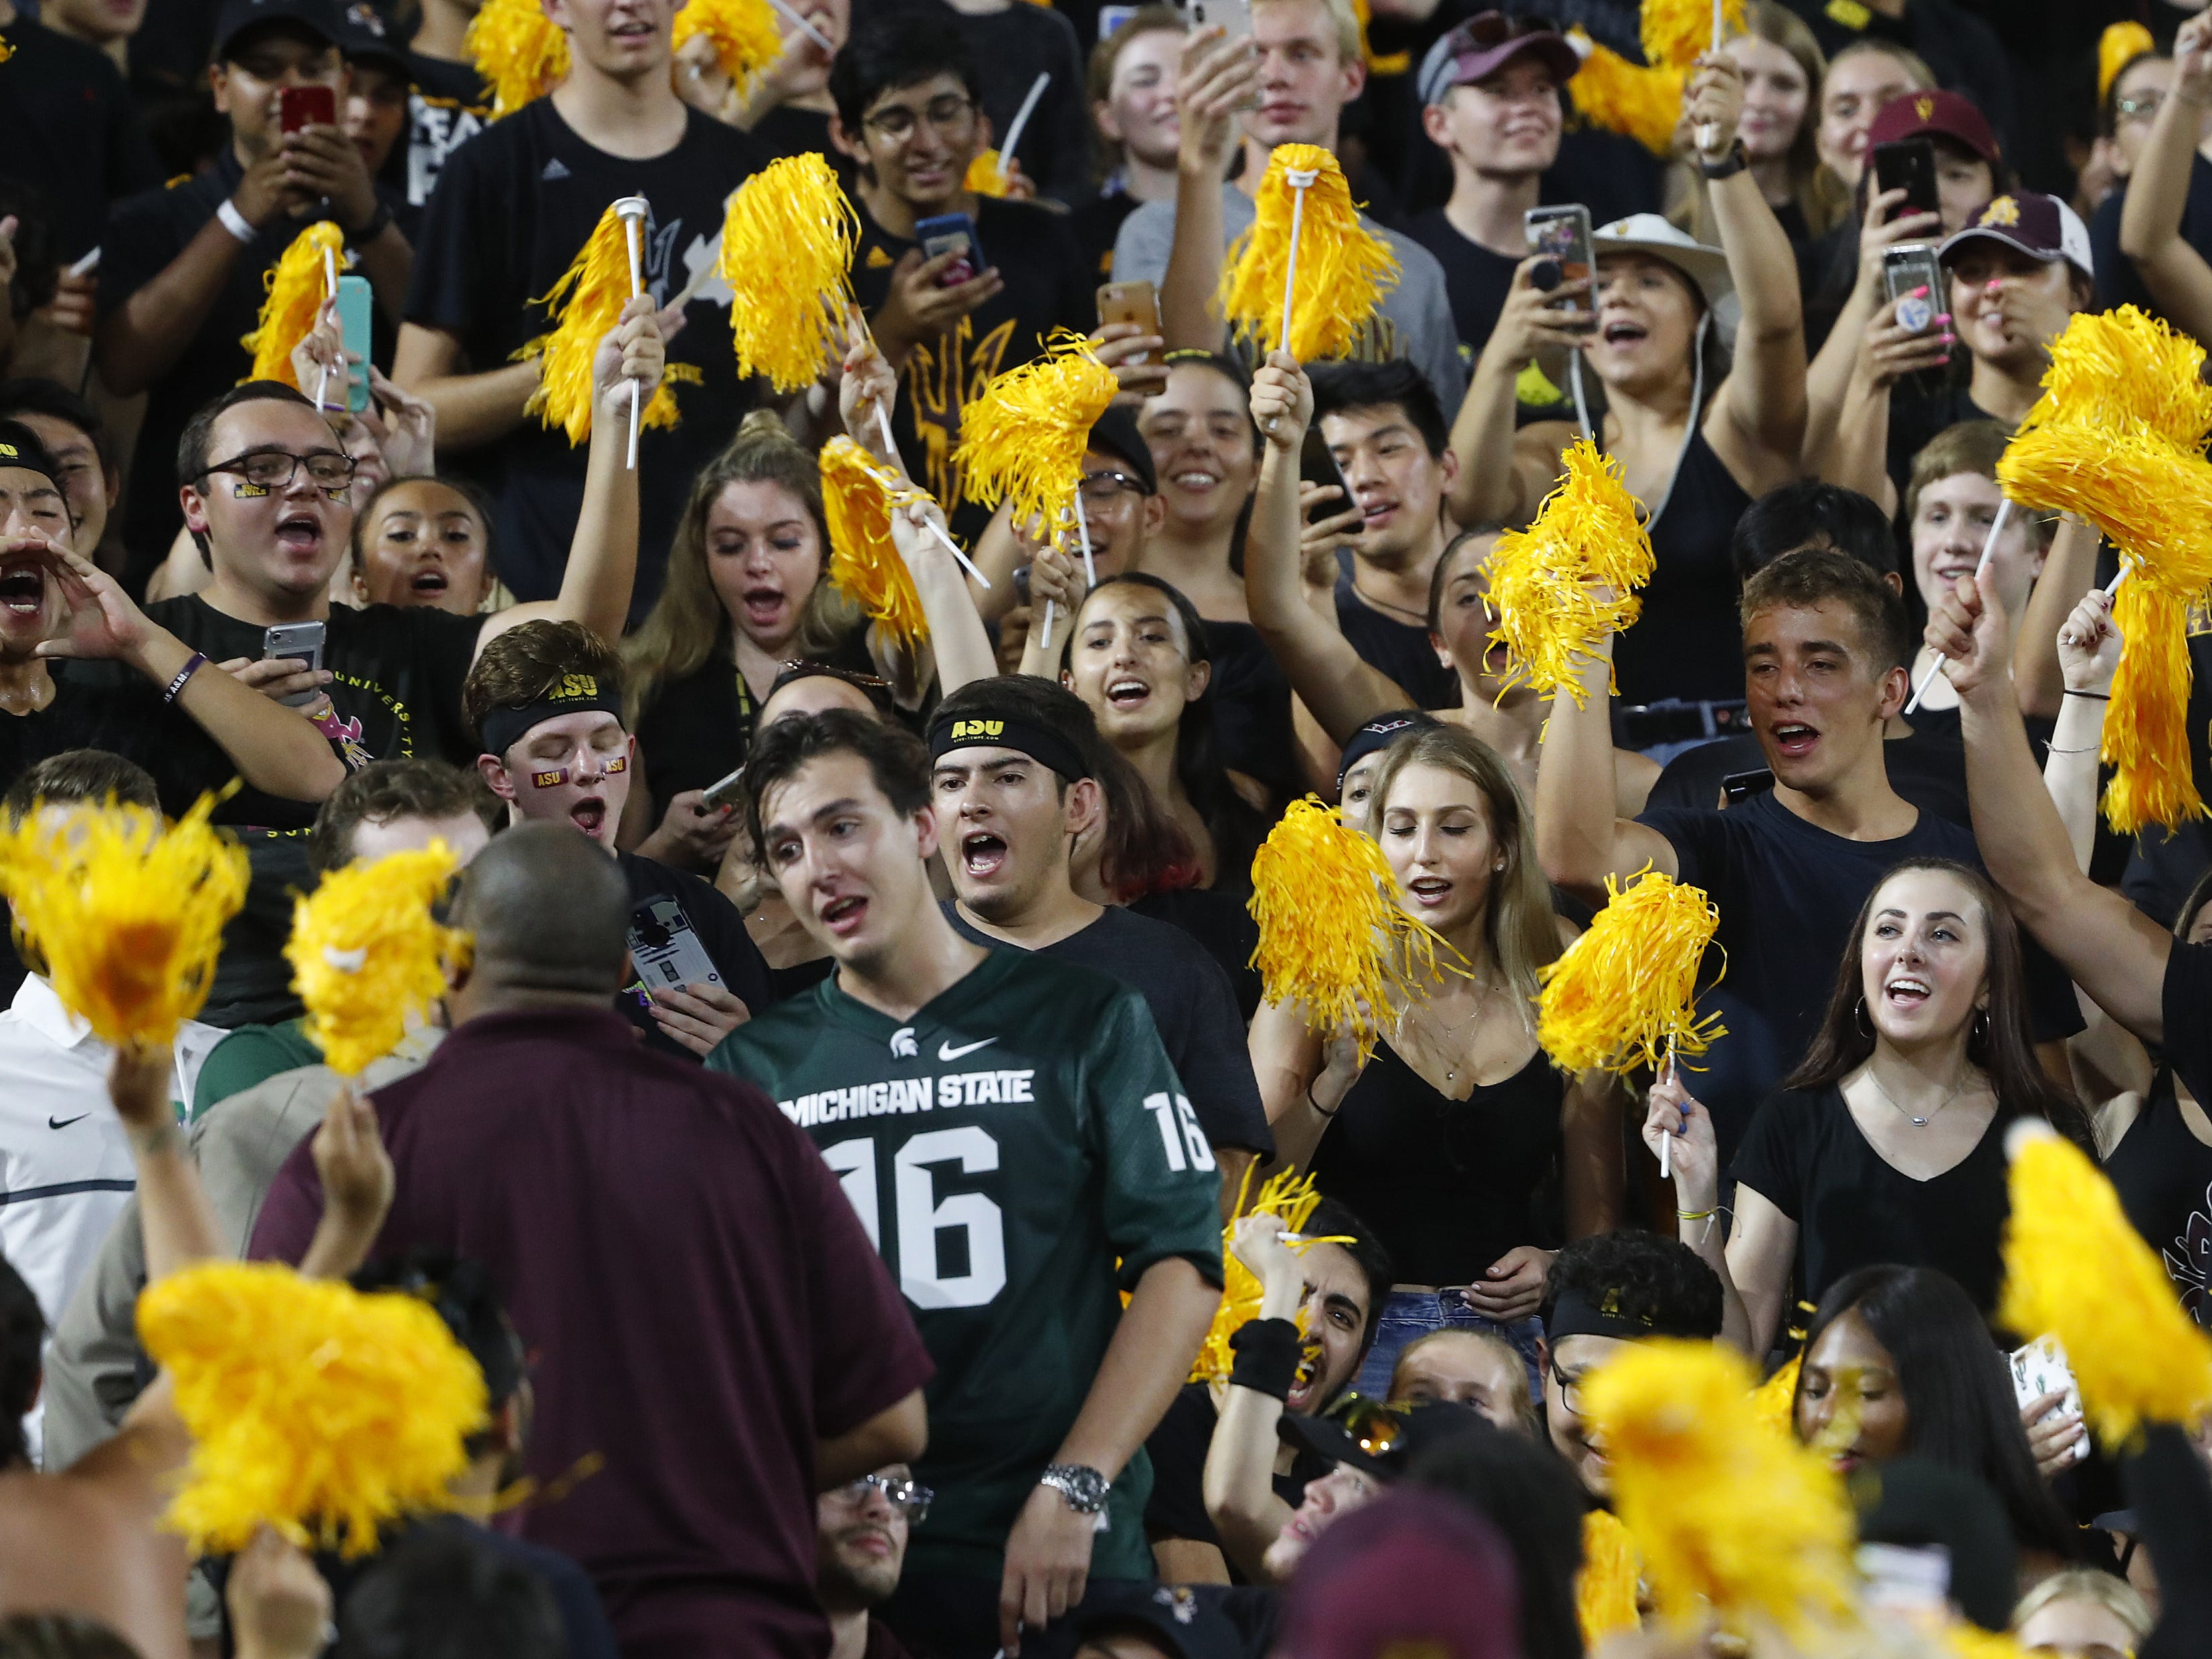 ASU fans chant to have Michigan State fans removed from student section during the second quarter at Sun Devil Stadium in Tempe, Ariz. on Sept. 8, 2018.